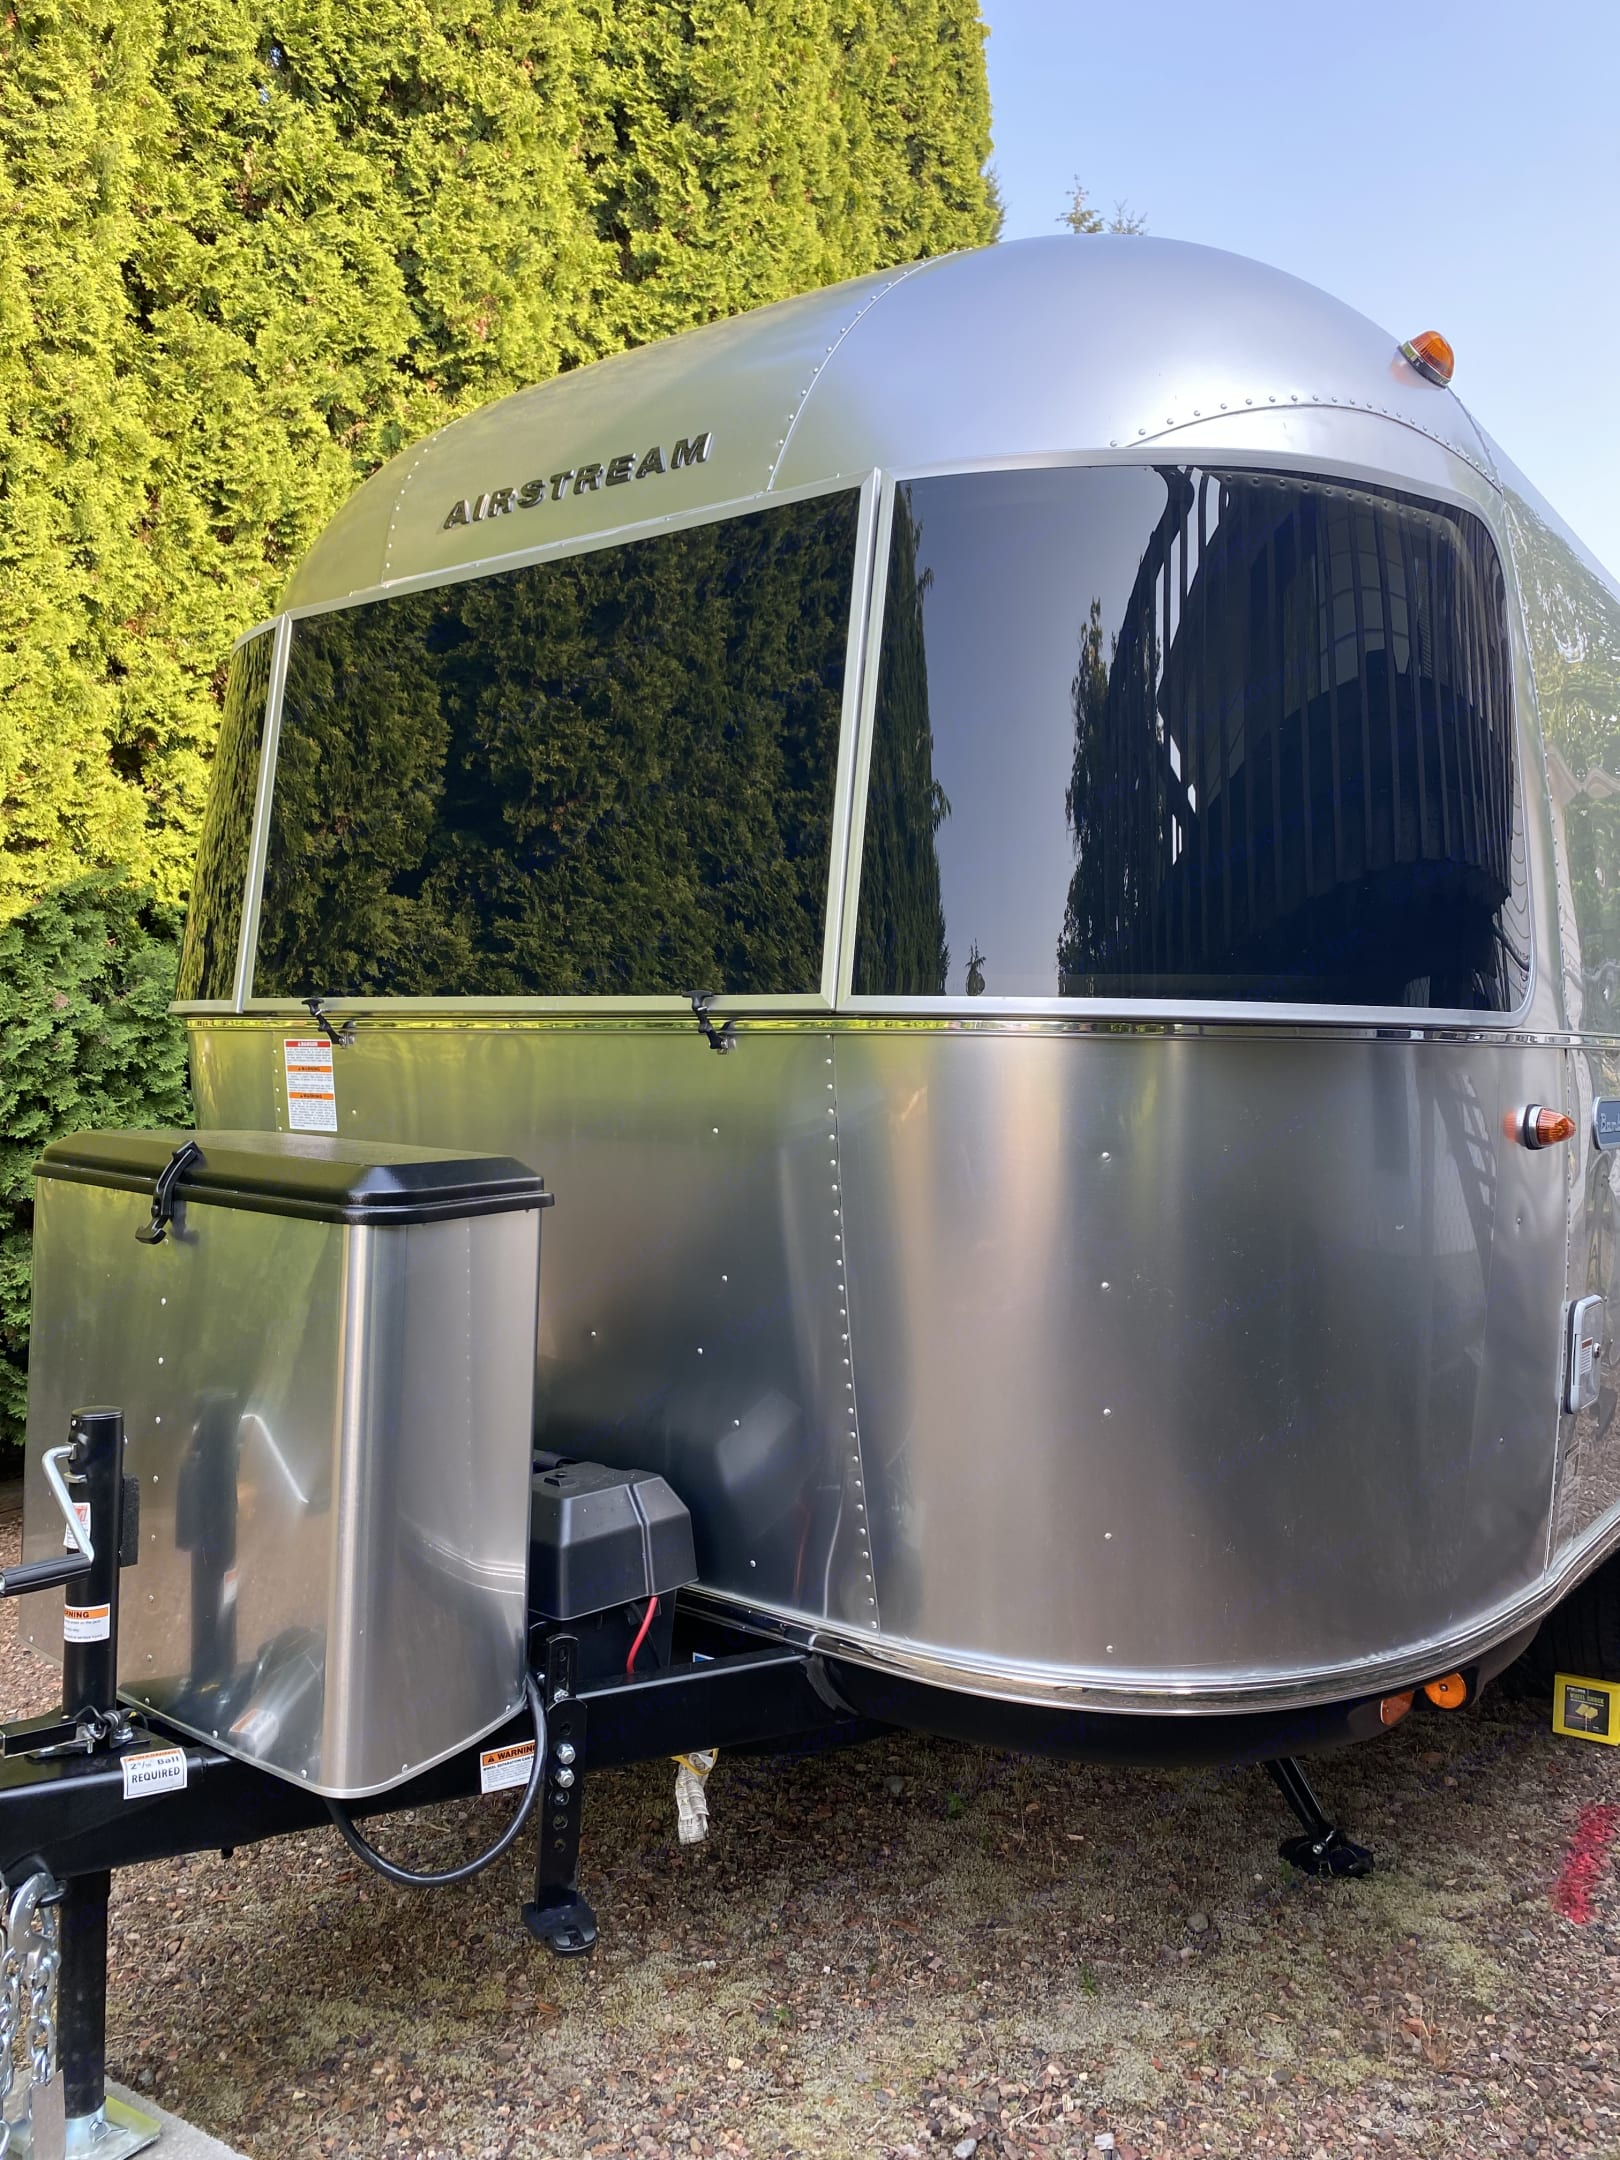 Wraparound front windows to maximize outdoor views from inside. Airstream Sport 2021